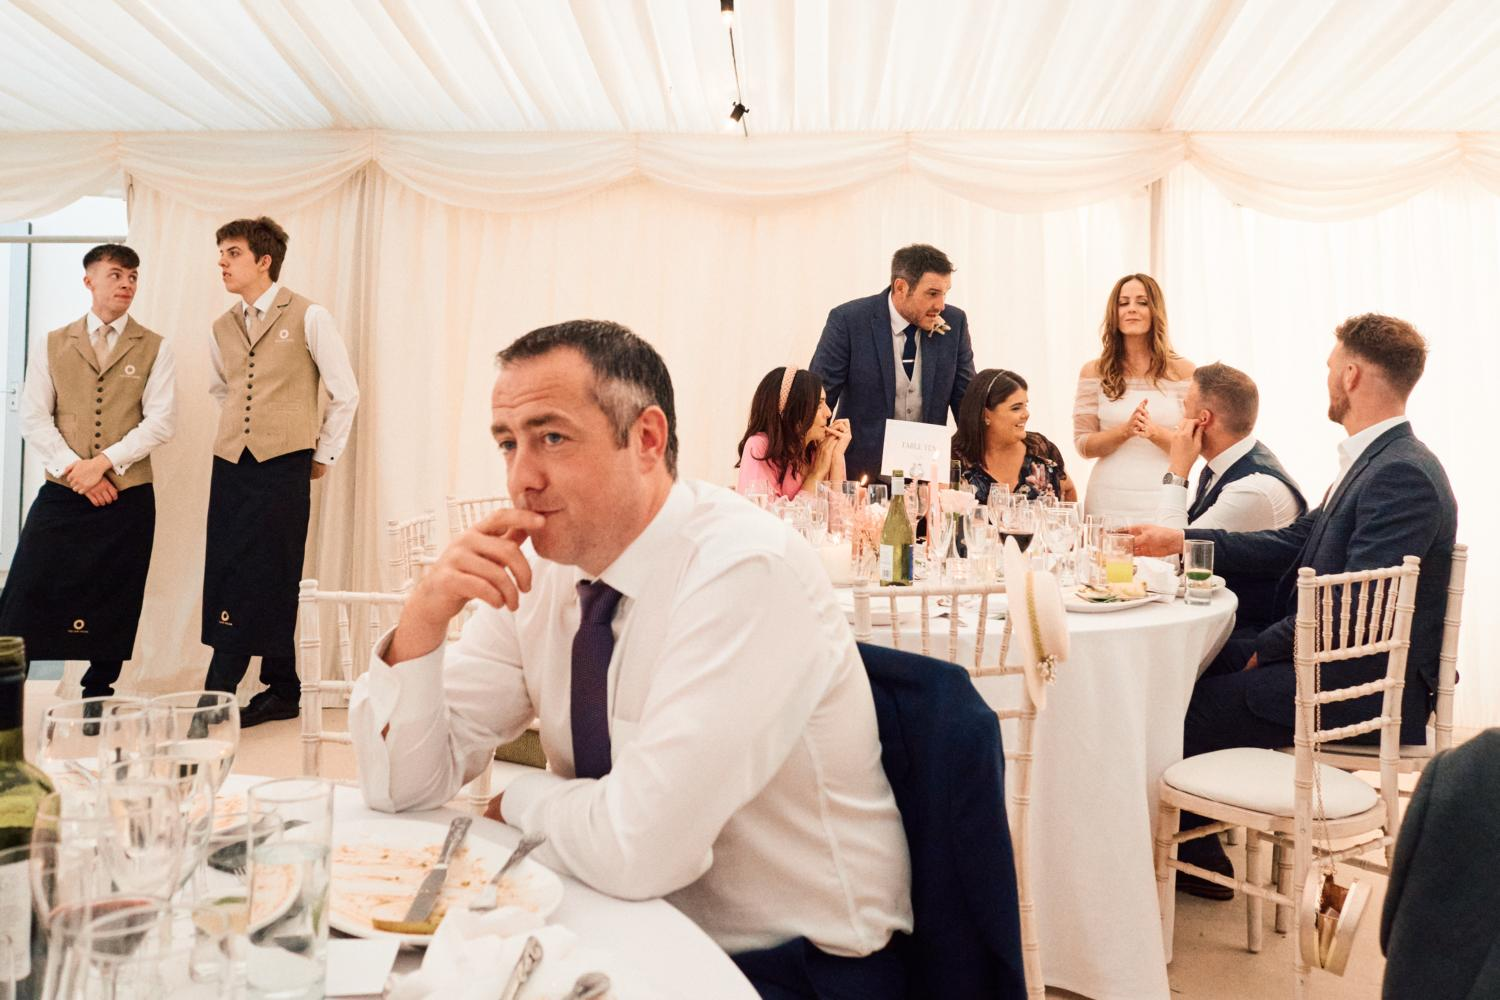 Wedding guests mingle in a marquee in the evening